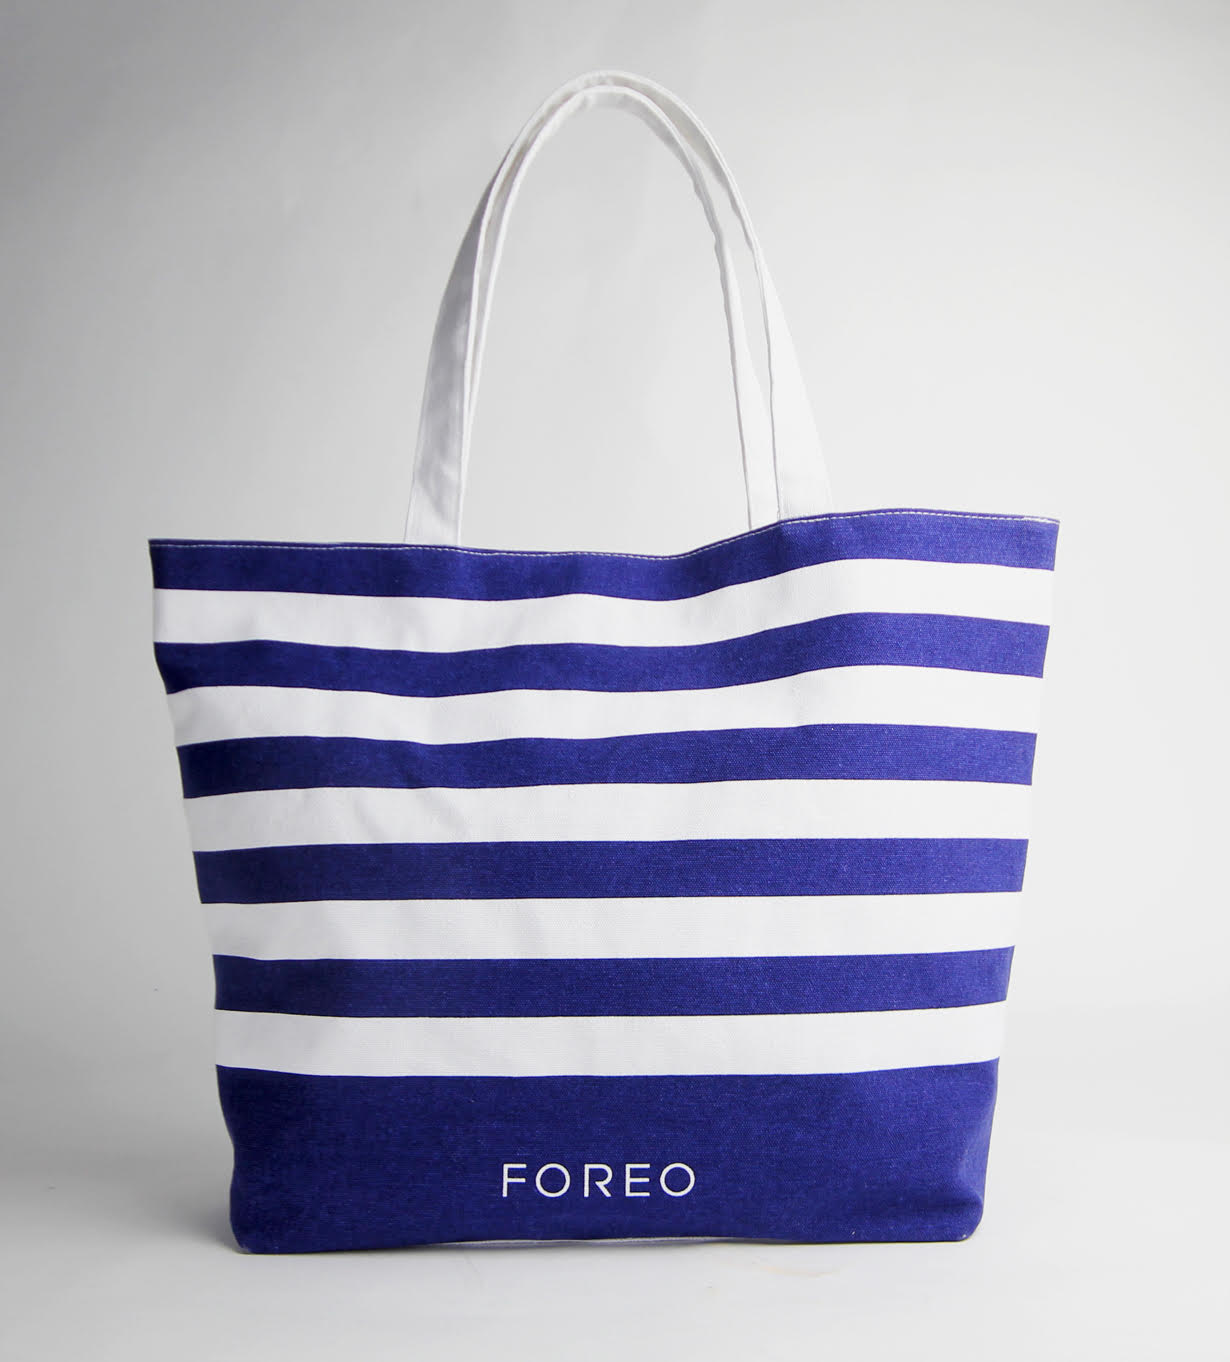 FREE FOREO Beach Bag with all FOREO Purchases @AskDerm